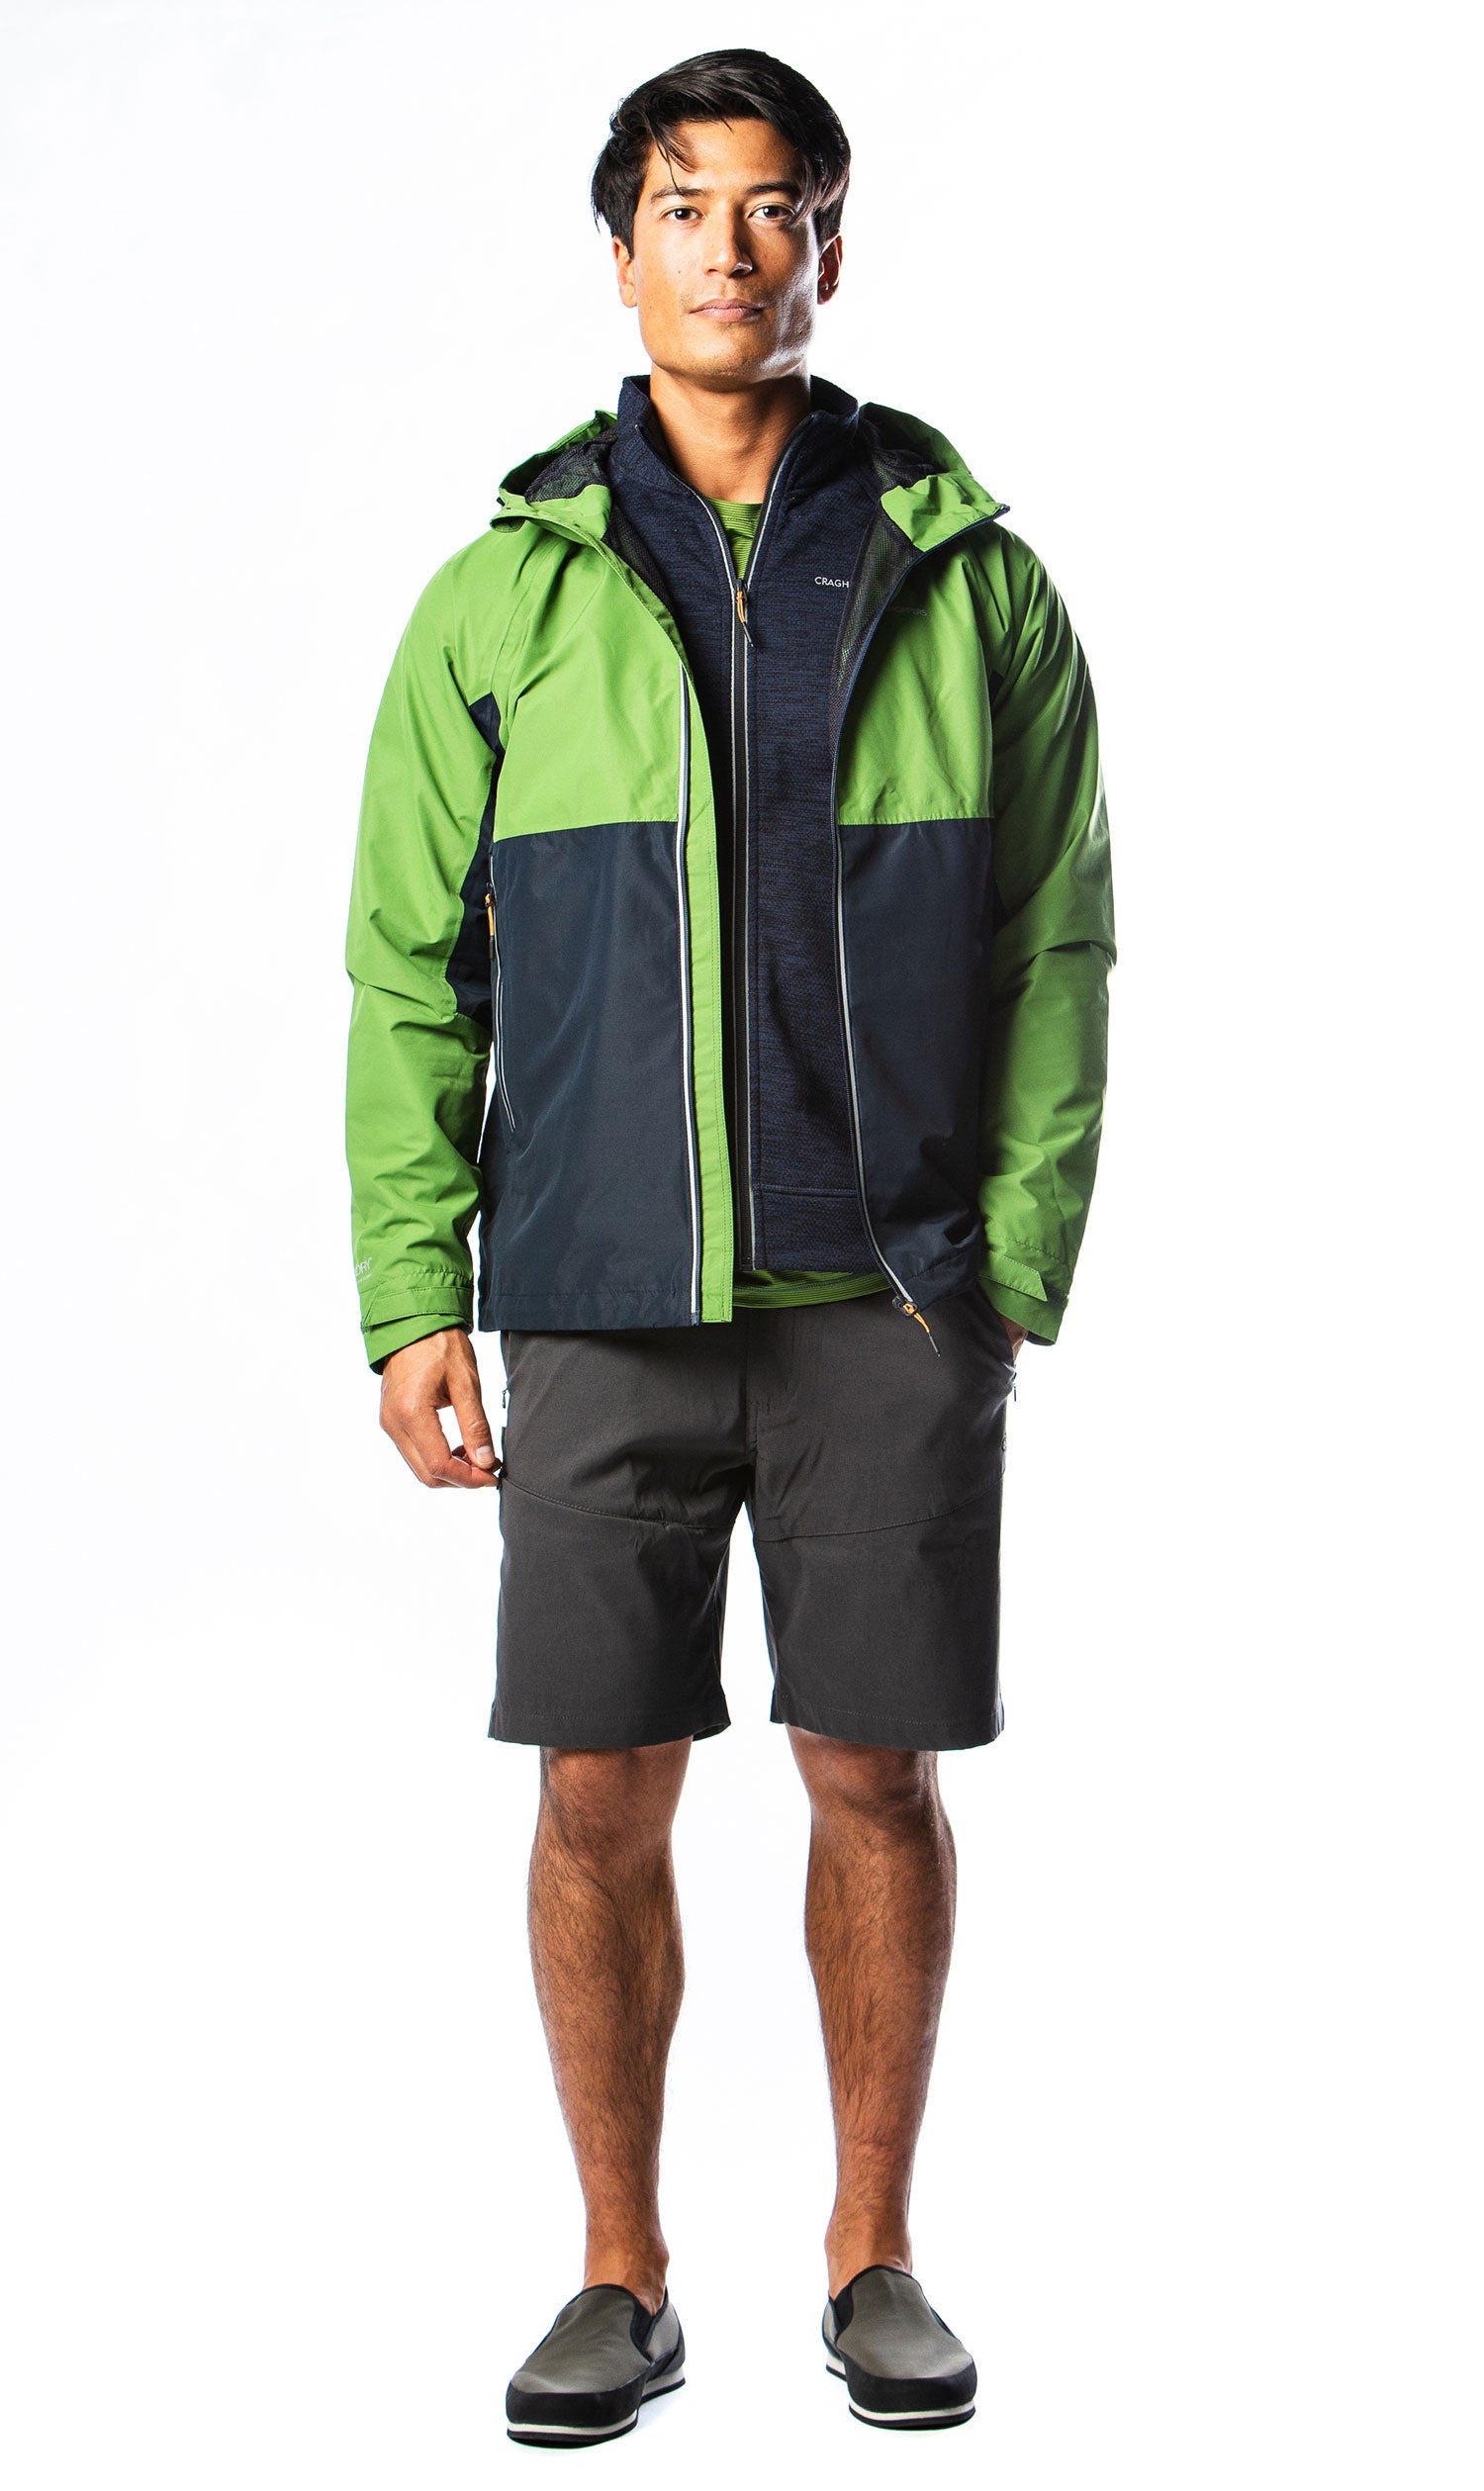 Craghoppers shorts and waterproof outfit